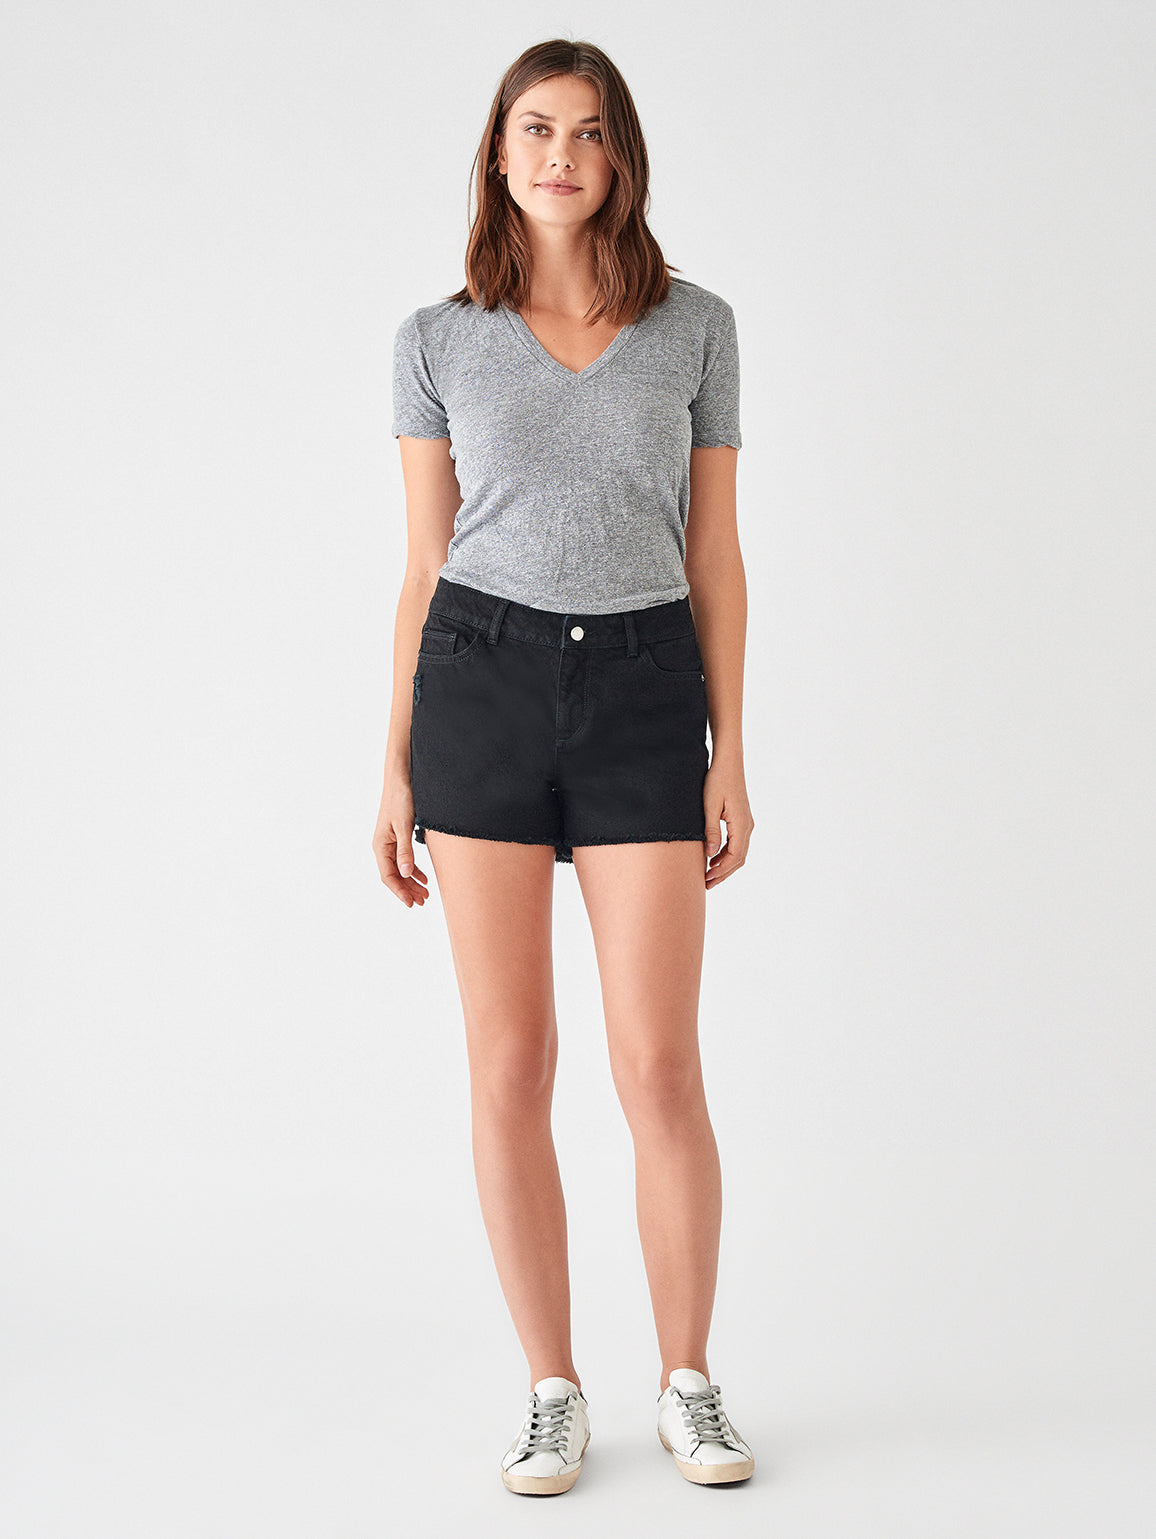 Karlie Low Rise Boyfriend Short | Arrowhead